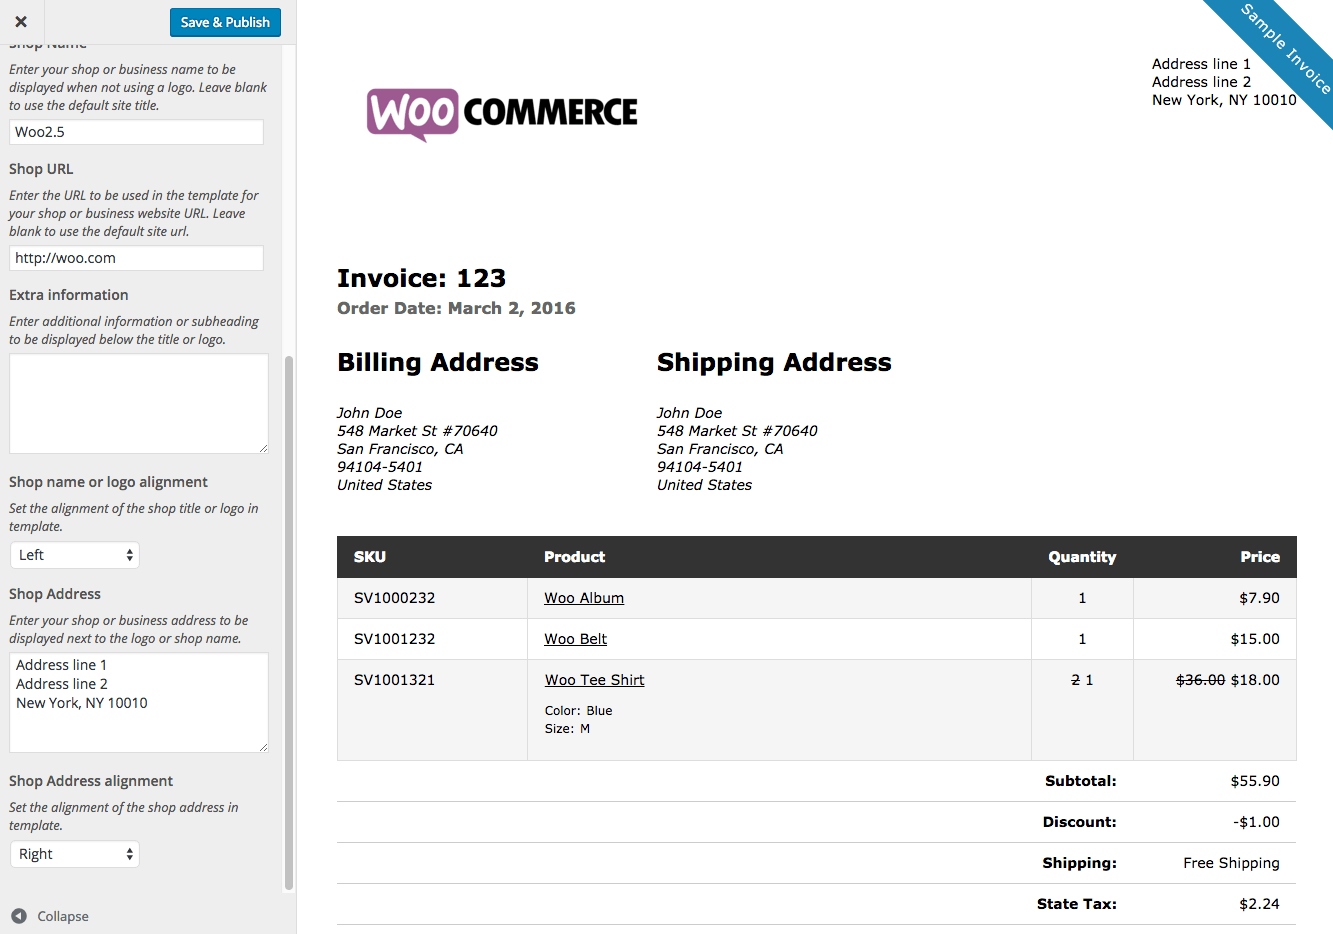 Usdgus  Unusual Woocommerce Print Invoices Amp Packing Lists  Woocommerce Docs With Exciting Woocommerce Print Invoices  Packing Lists Customizer With Lovely Iphone Receipts Also Sales Receipt Template Free In Addition Lasagne Receipt And Net Cash Receipts As Well As Best Android Receipt Scanner Additionally Rent Receipt Format Free Download From Docswoocommercecom With Usdgus  Exciting Woocommerce Print Invoices Amp Packing Lists  Woocommerce Docs With Lovely Woocommerce Print Invoices  Packing Lists Customizer And Unusual Iphone Receipts Also Sales Receipt Template Free In Addition Lasagne Receipt From Docswoocommercecom